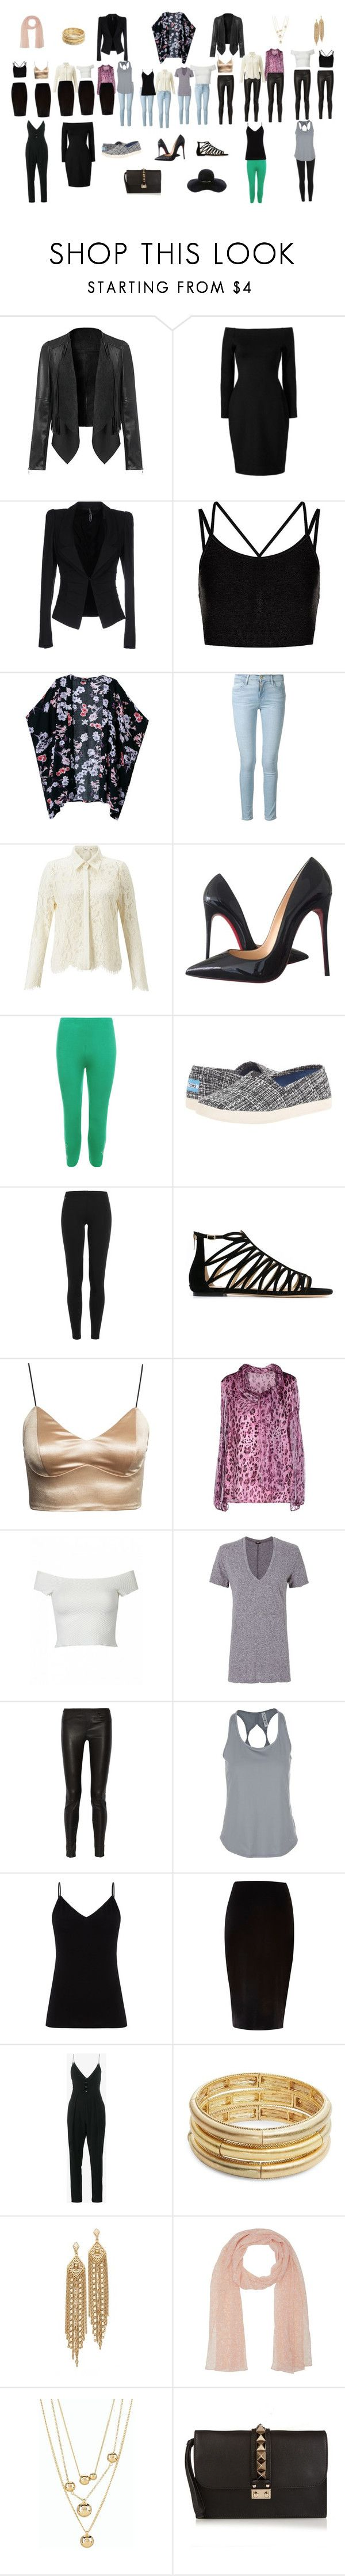 """""""Outfit Guide"""" by smartbirdy on Polyvore featuring L'Agence, Liviana Conti, Sweaty Betty, Frame, Christian Louboutin, WearAll, TOMS, Polo Ralph Lauren, Jimmy Choo and Blumarine"""